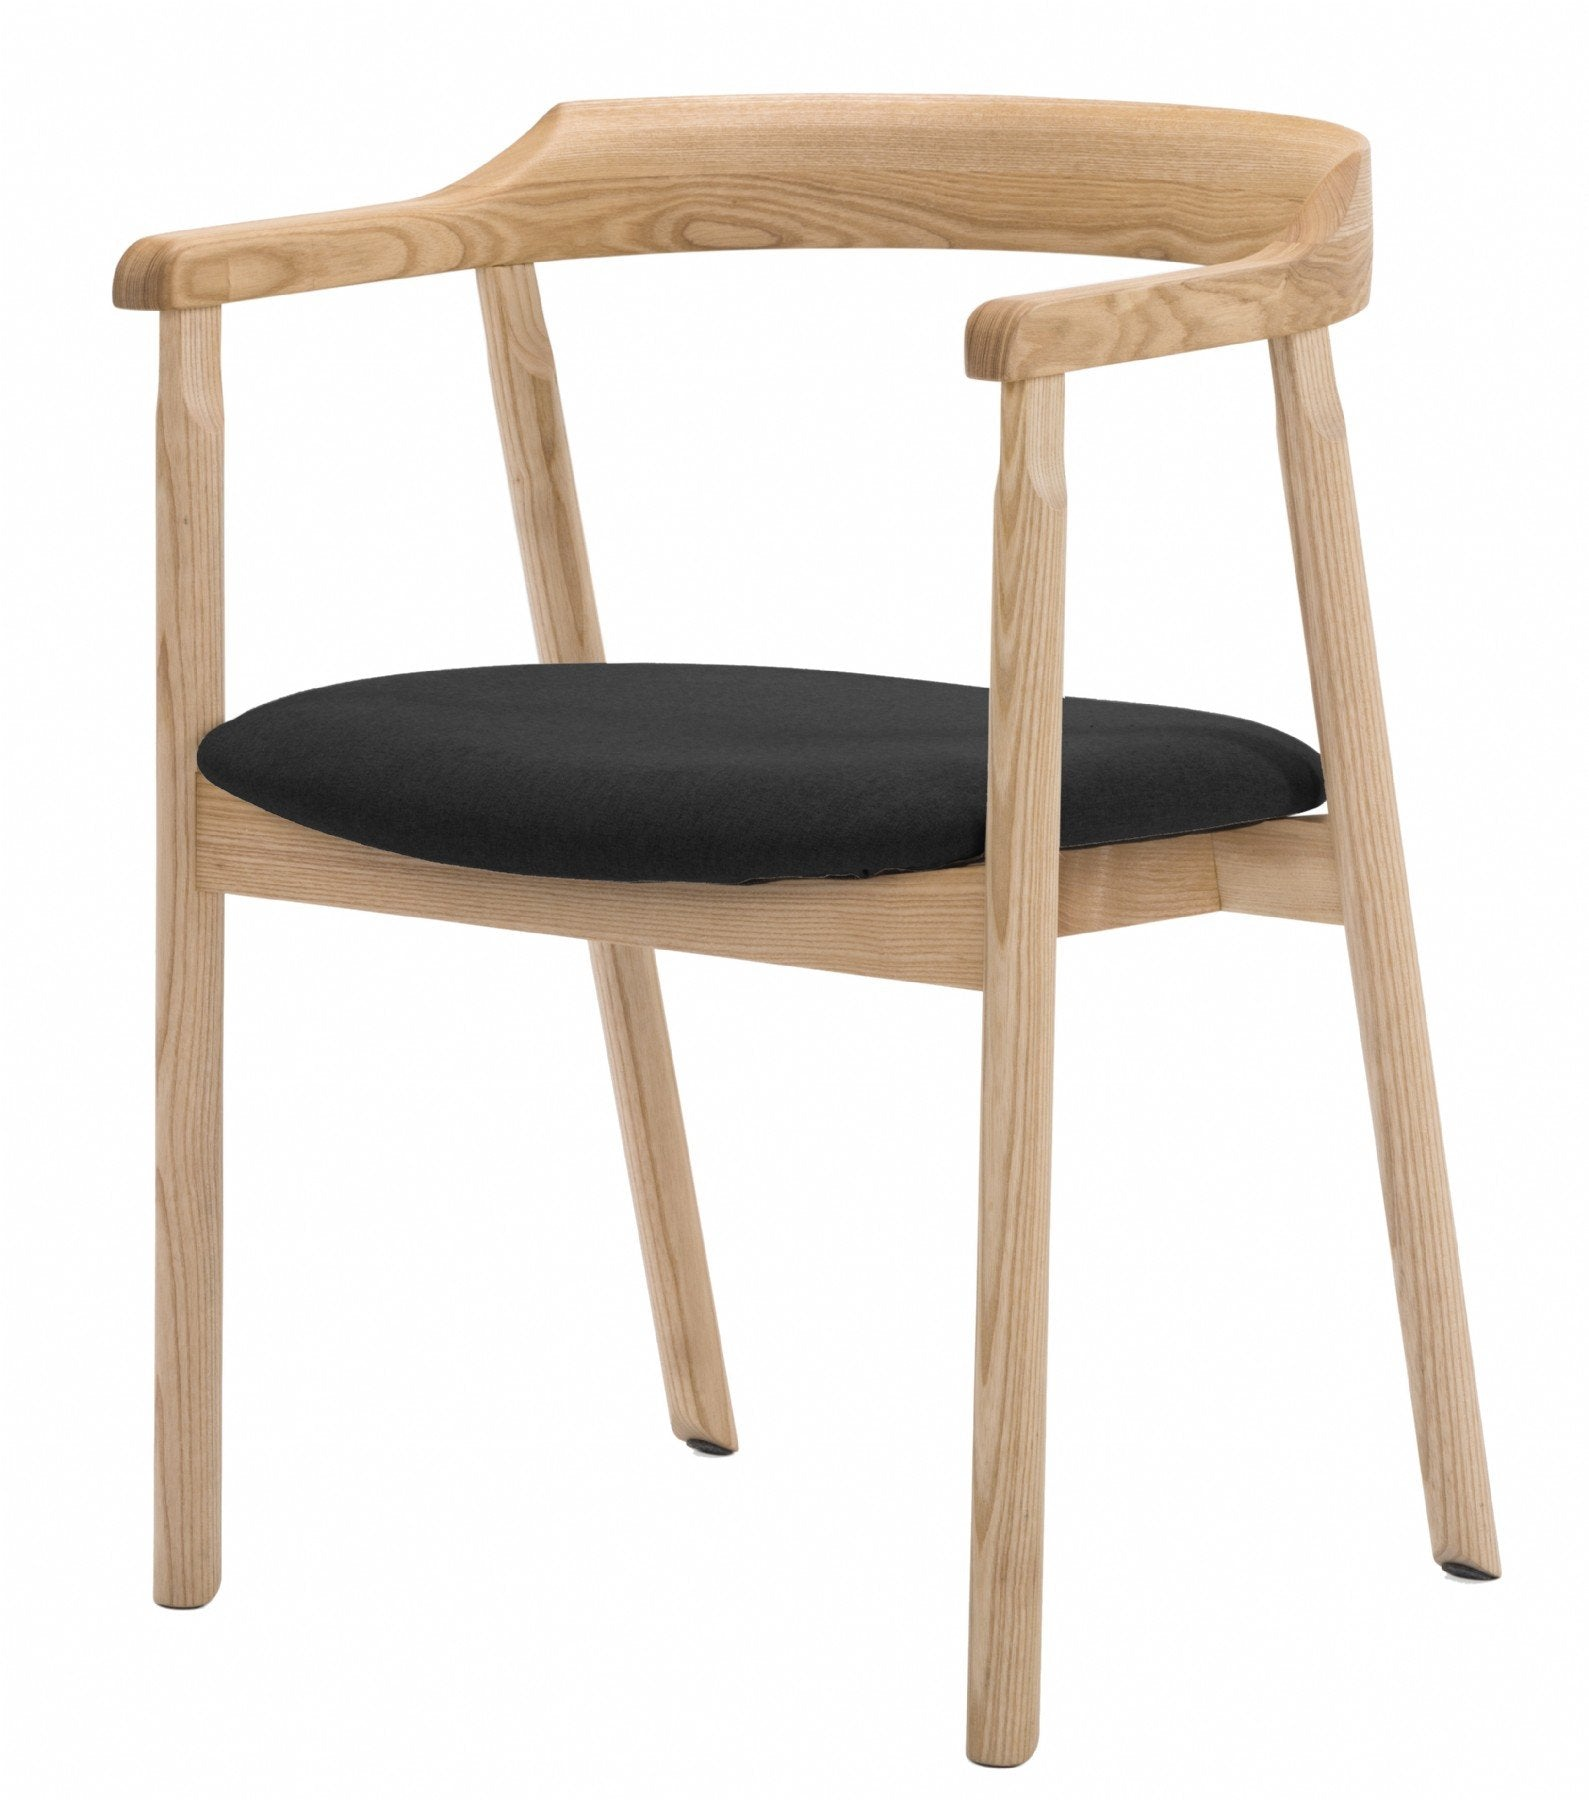 NOFU 737 Dining Chair - Black/Natural Ash